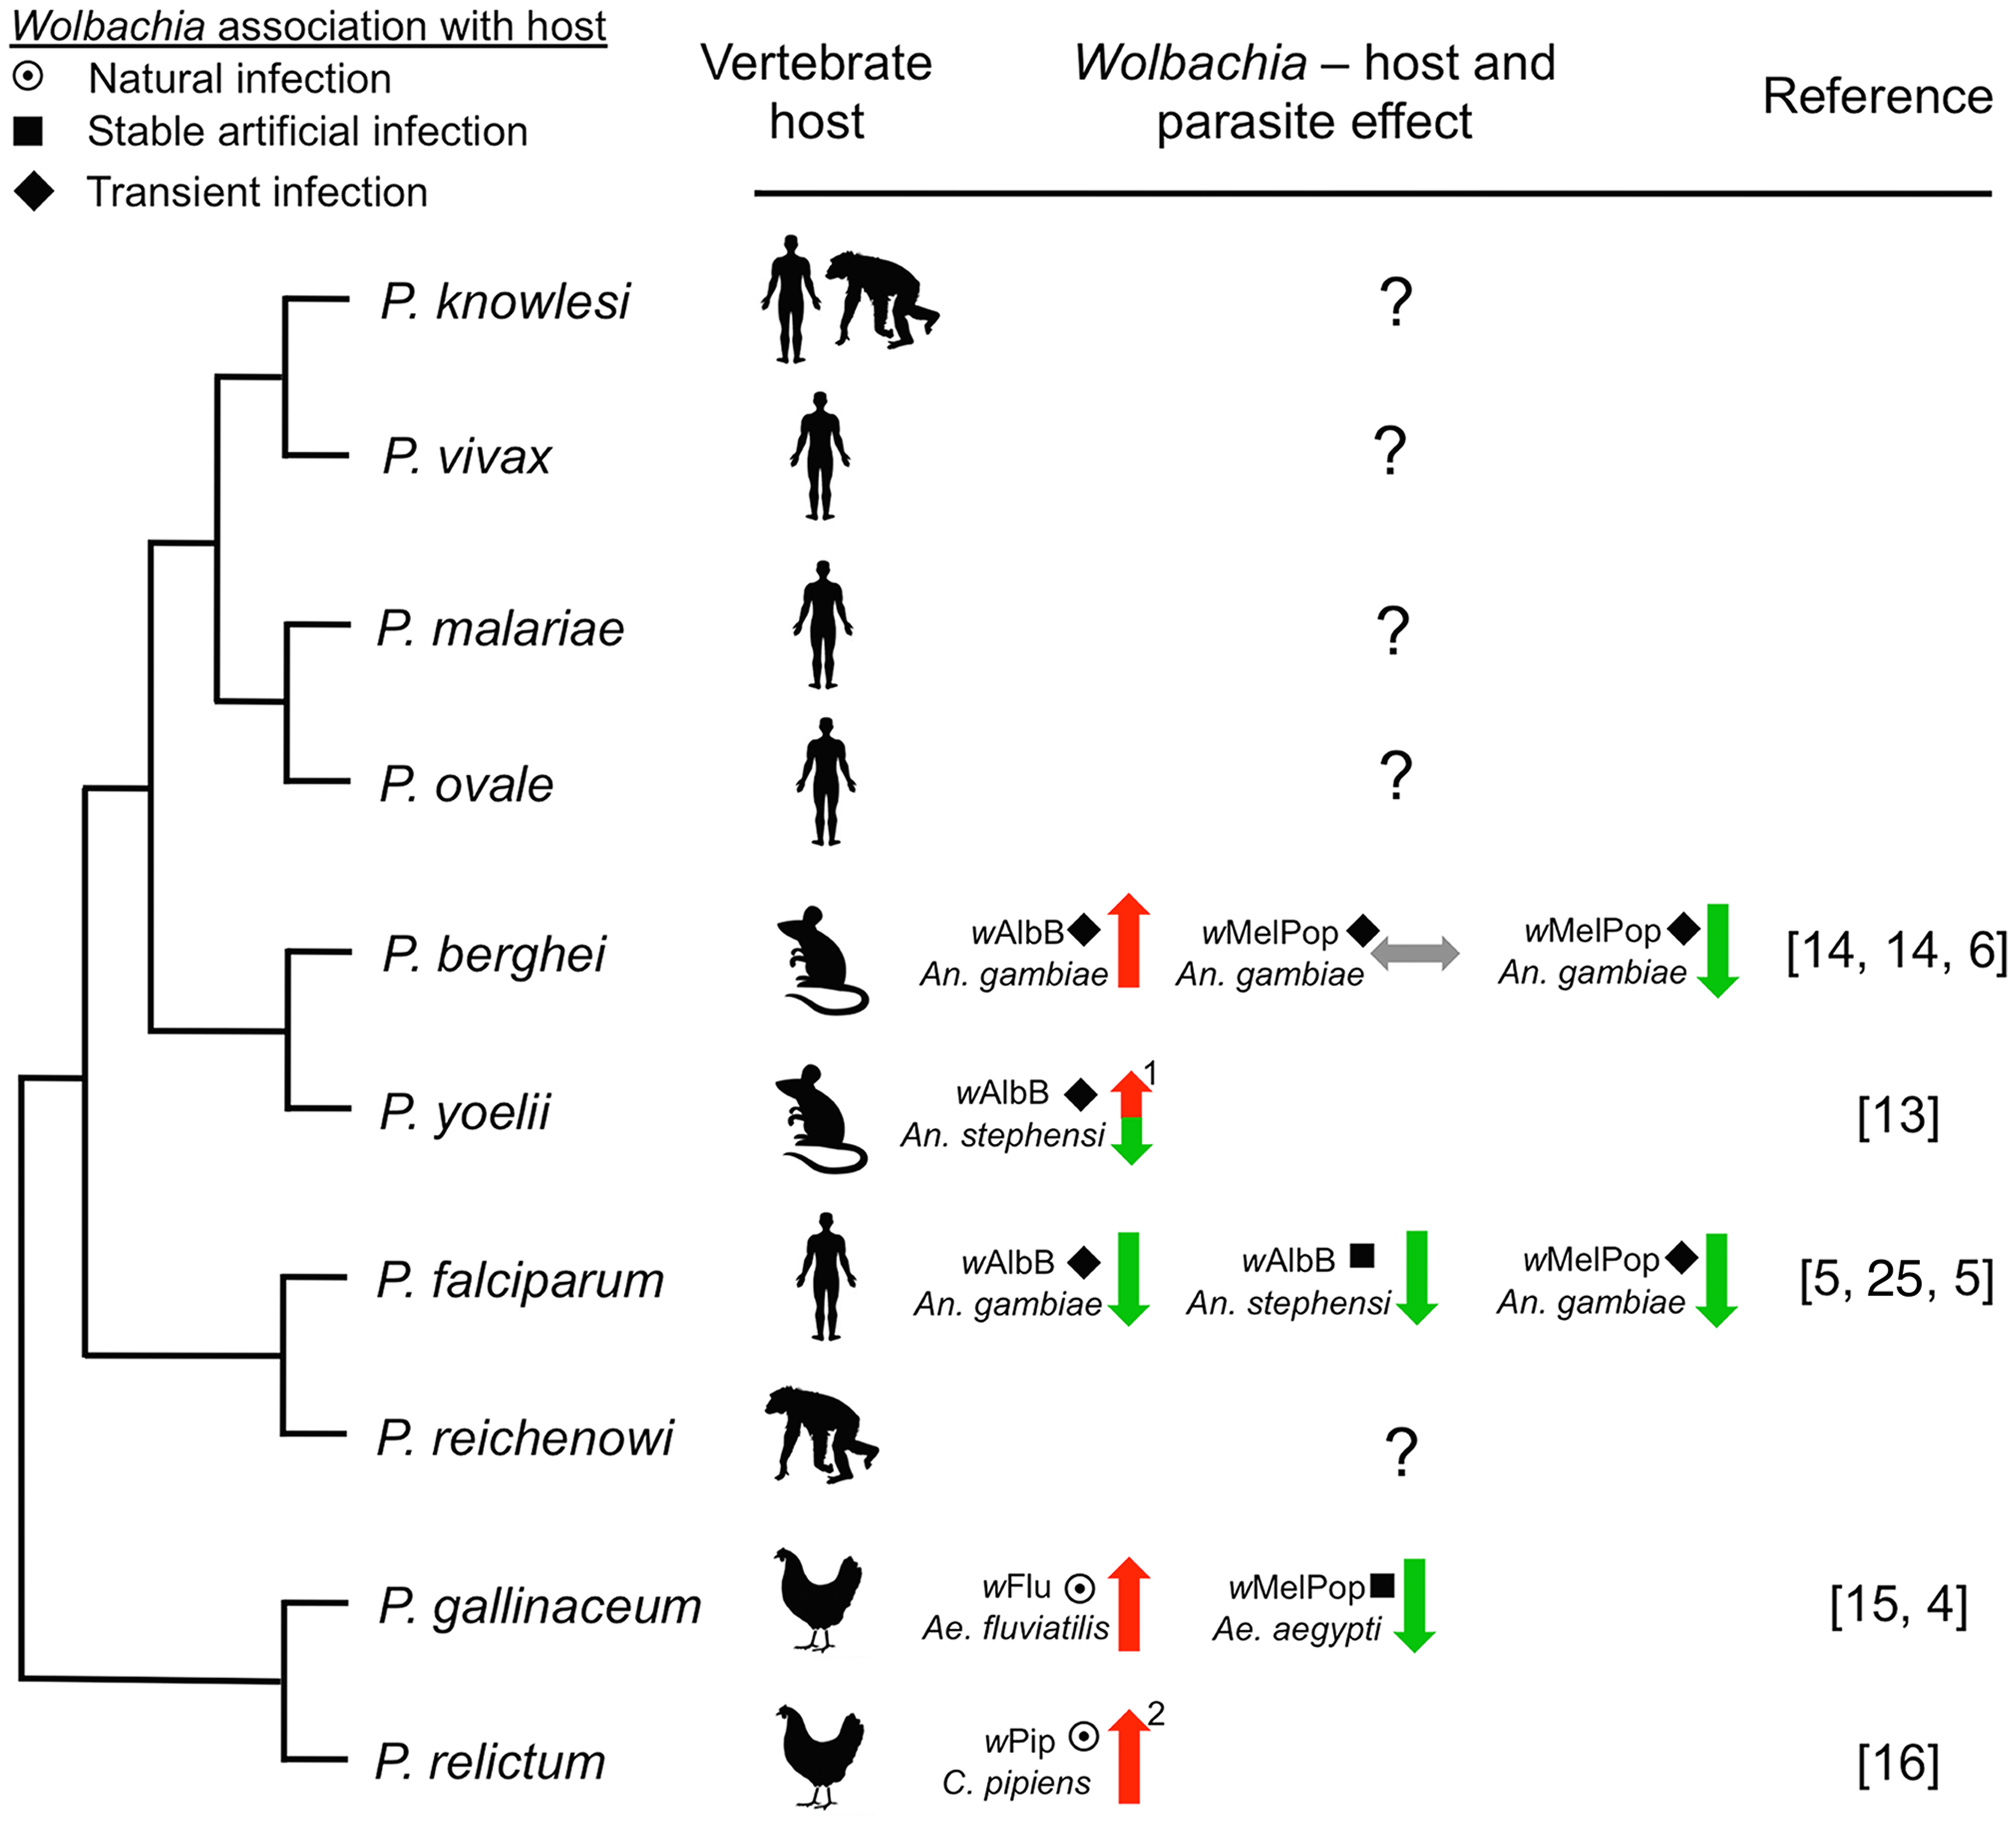 Representative phylogenetic dendrogram of <i>Plasmodium</i> parasites, their vertebrate hosts, and the influence of <i>Wolbachia</i> infection on parasite development within the mosquito vector.